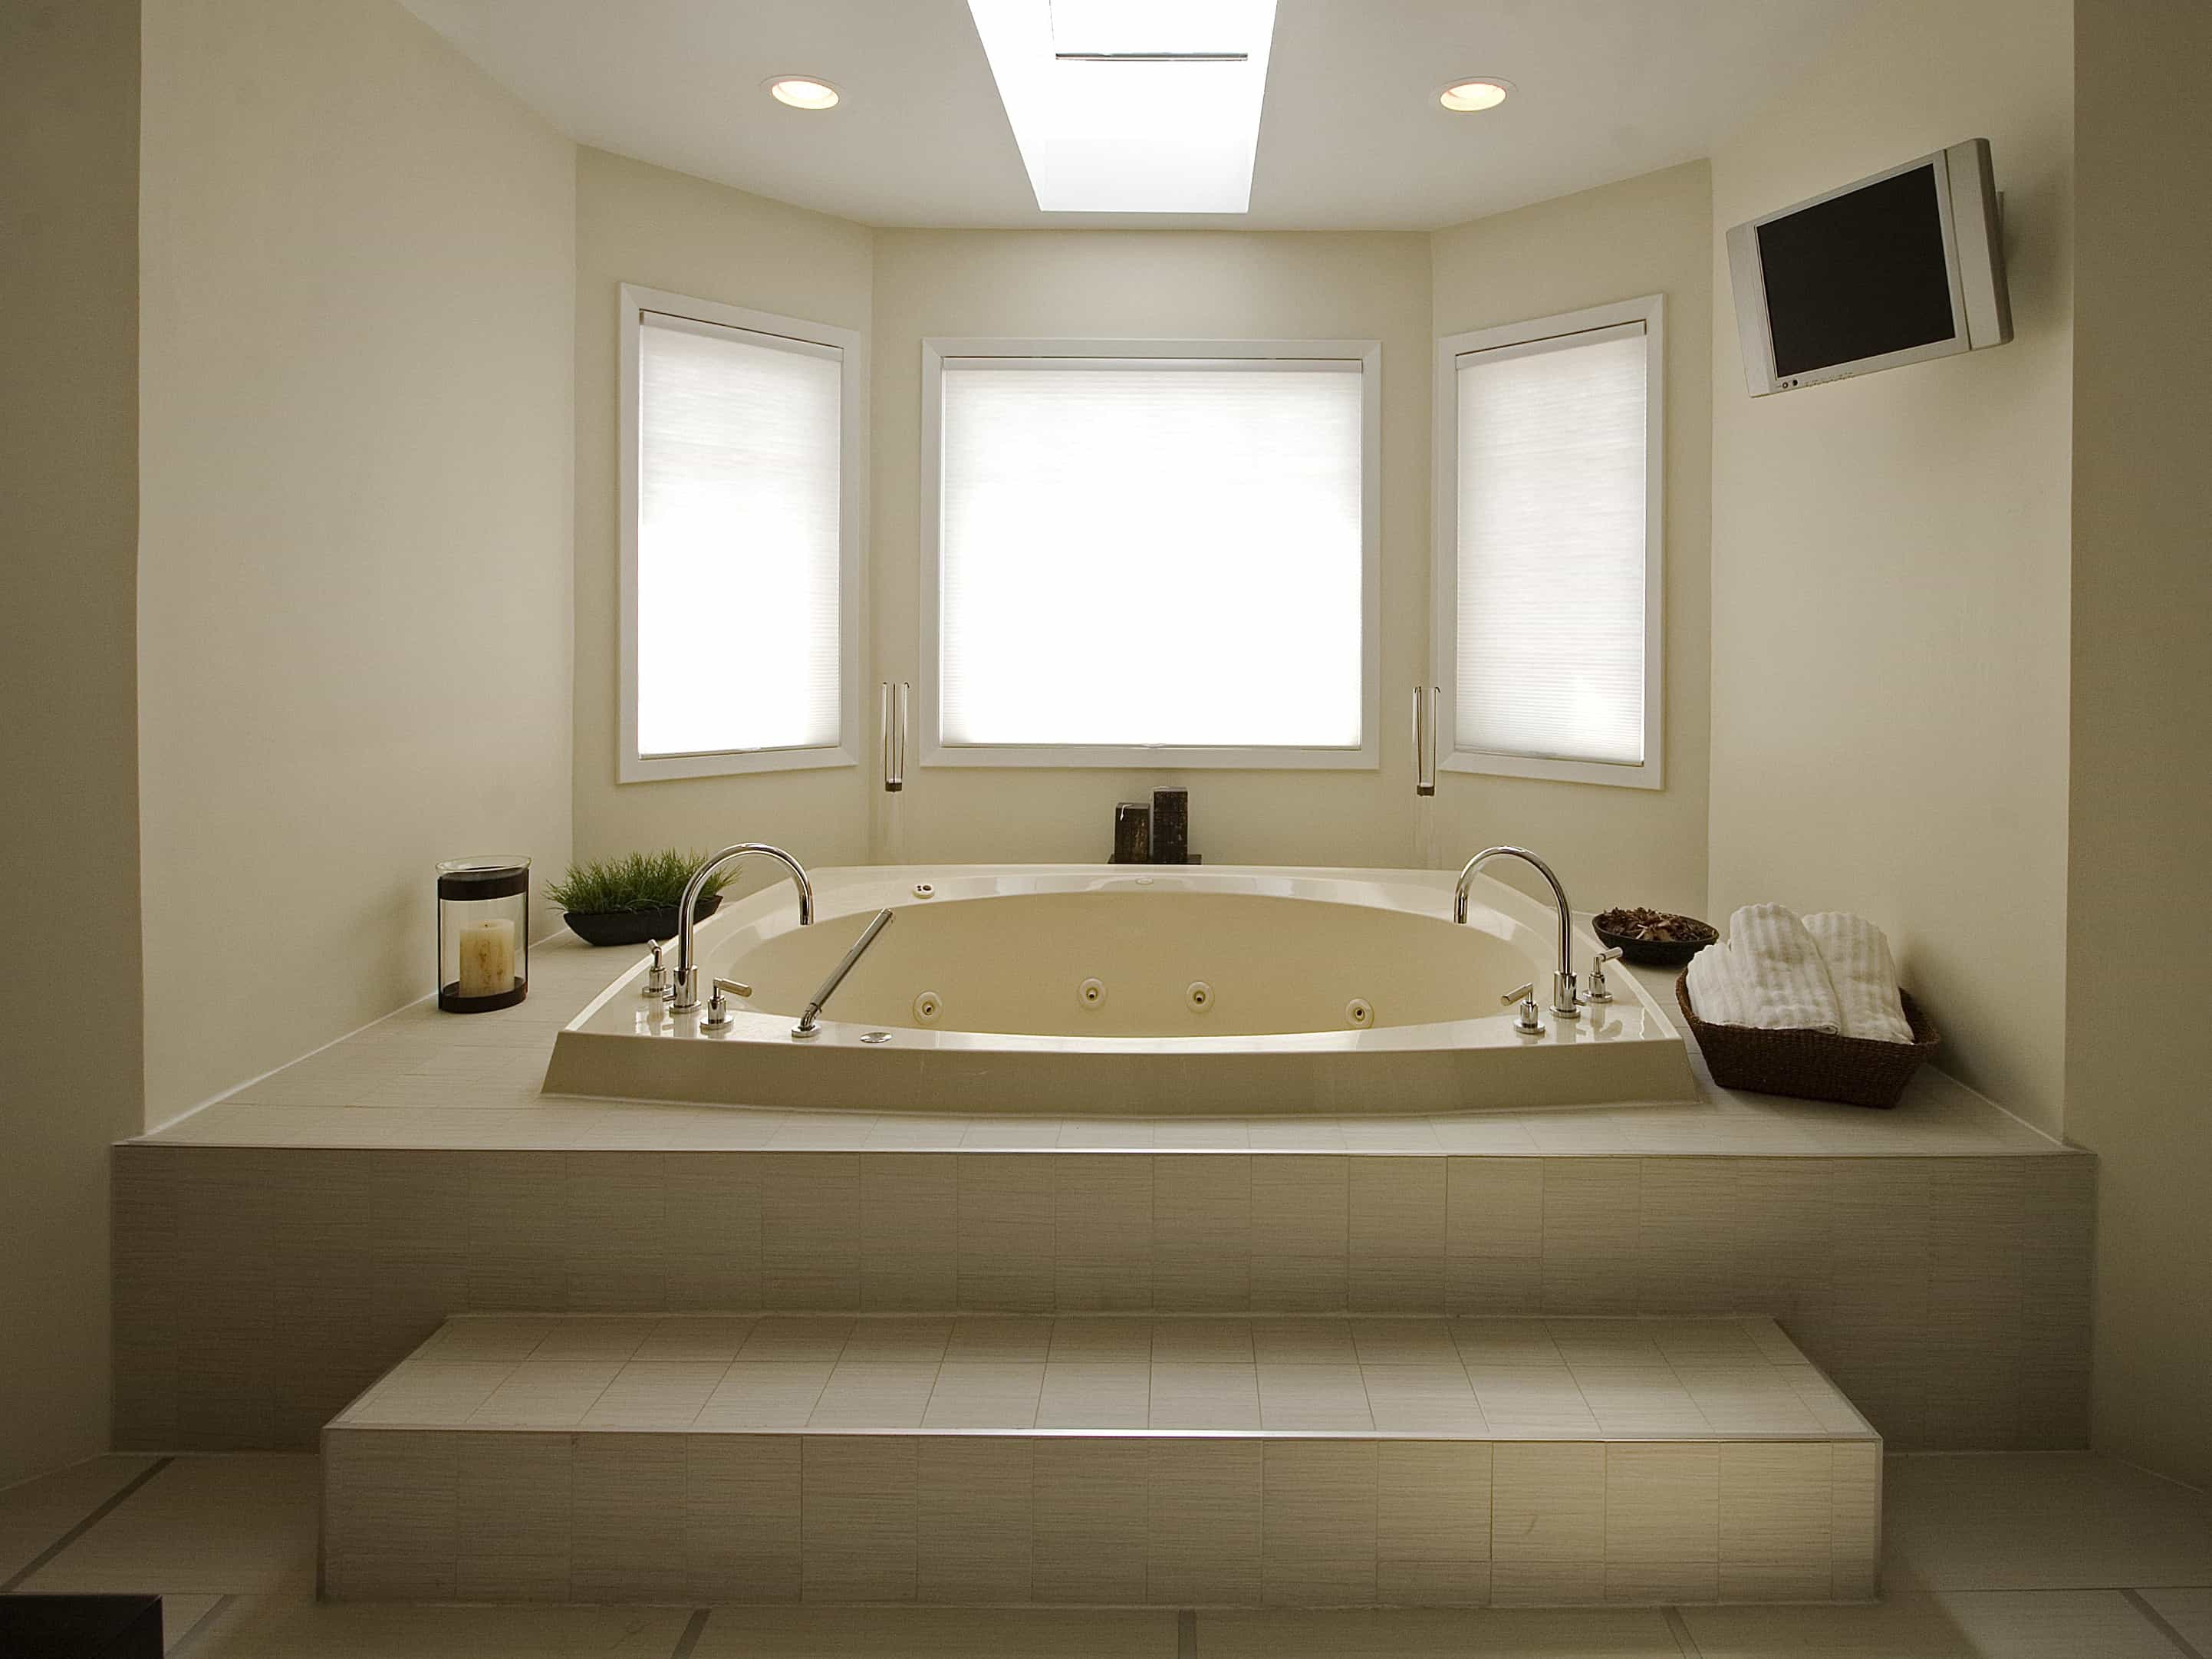 Whirlpool Bathtub In Stunning White Modern Bathroom (Image 29 of 29)